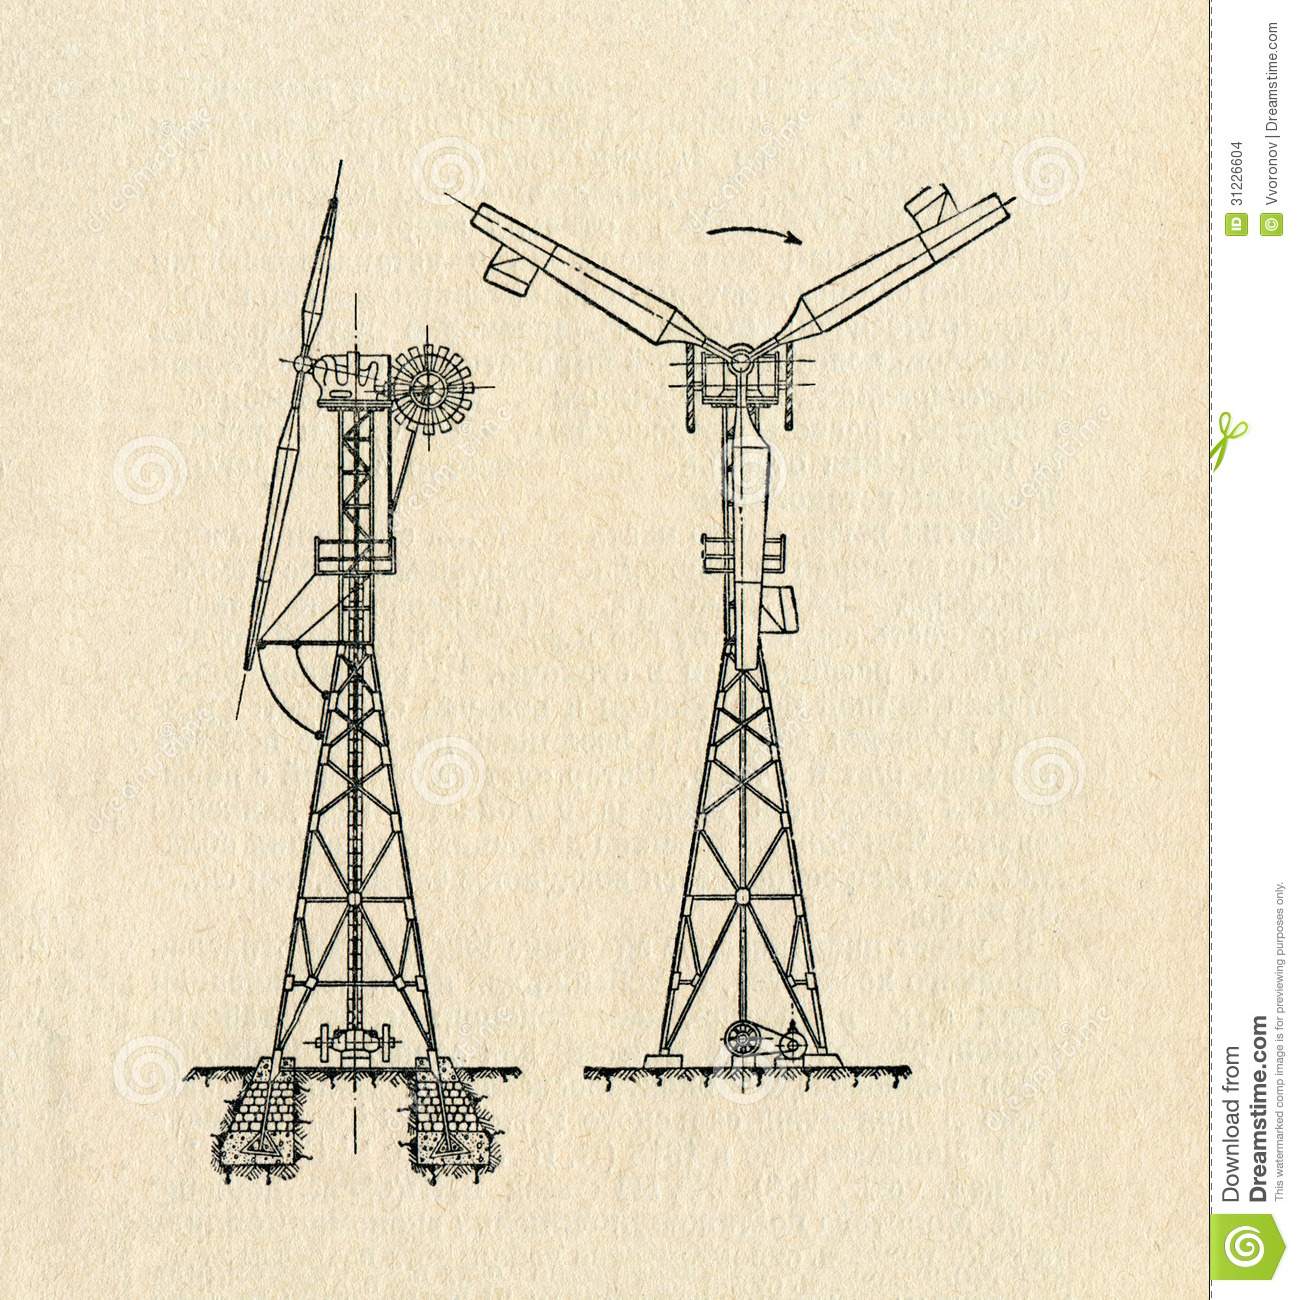 vintage diagram qms process flow electric windmill stock images image 31226604